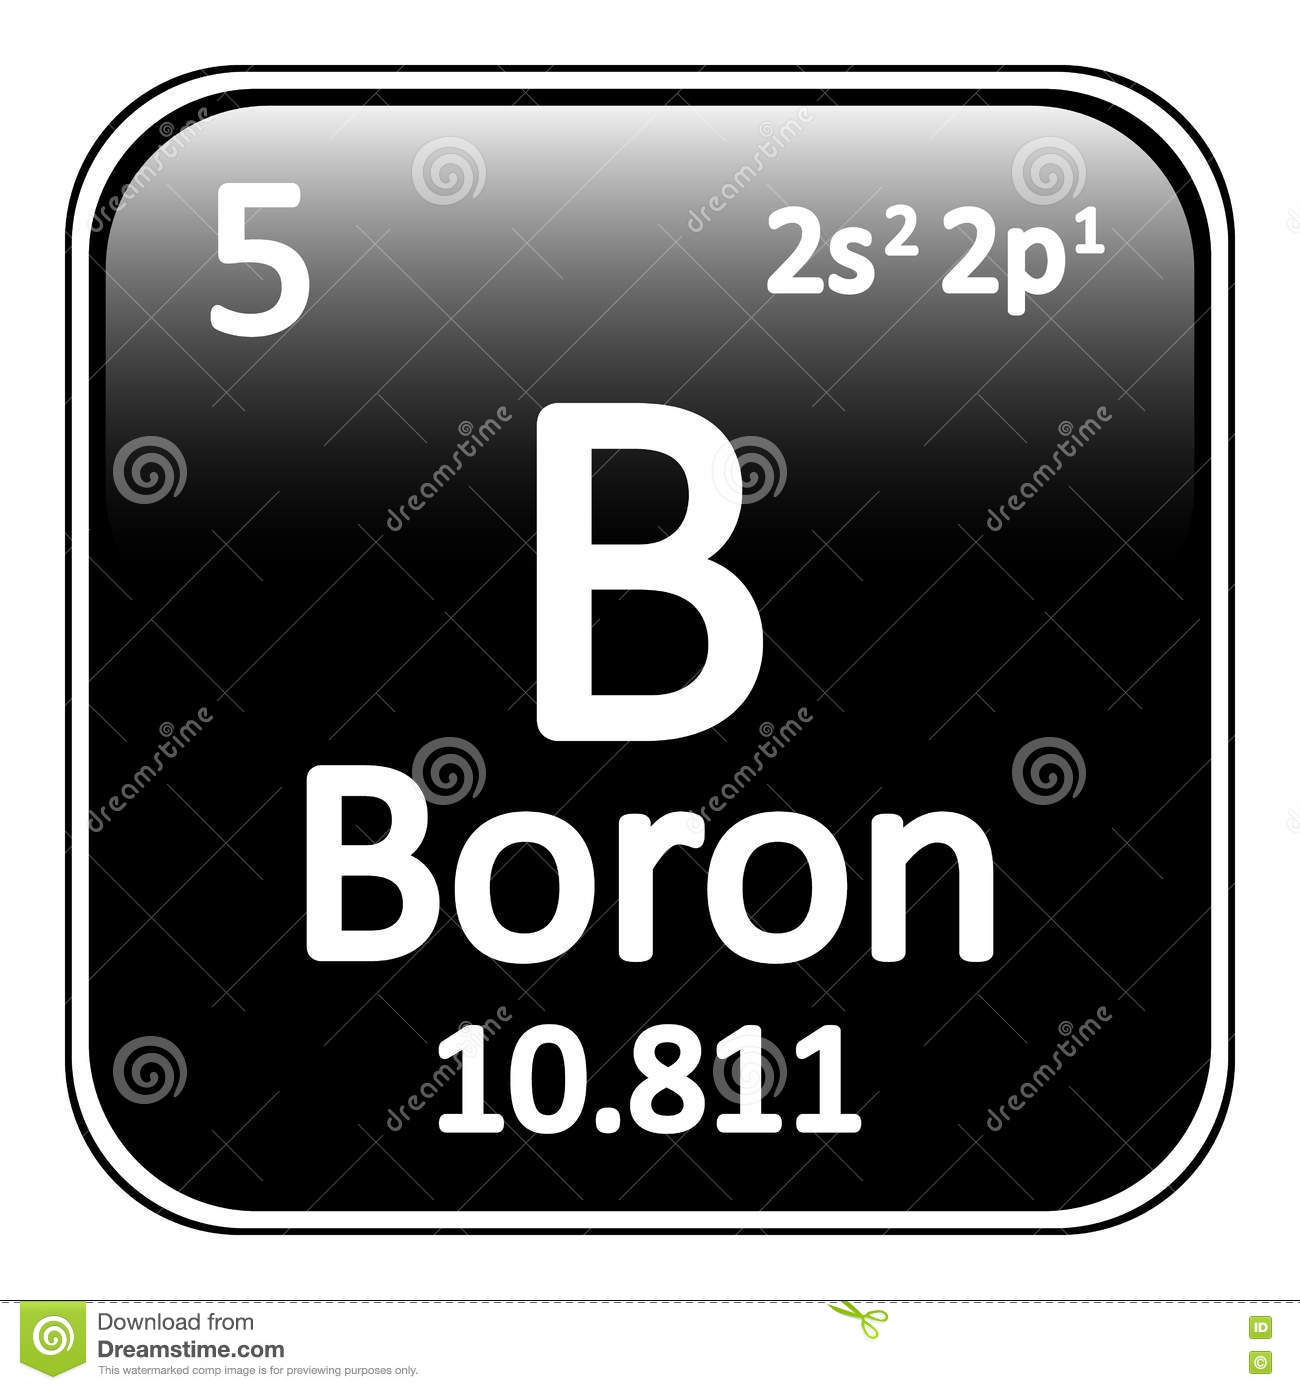 Periodic table element boron icon stock illustration periodic table element boron icon buycottarizona